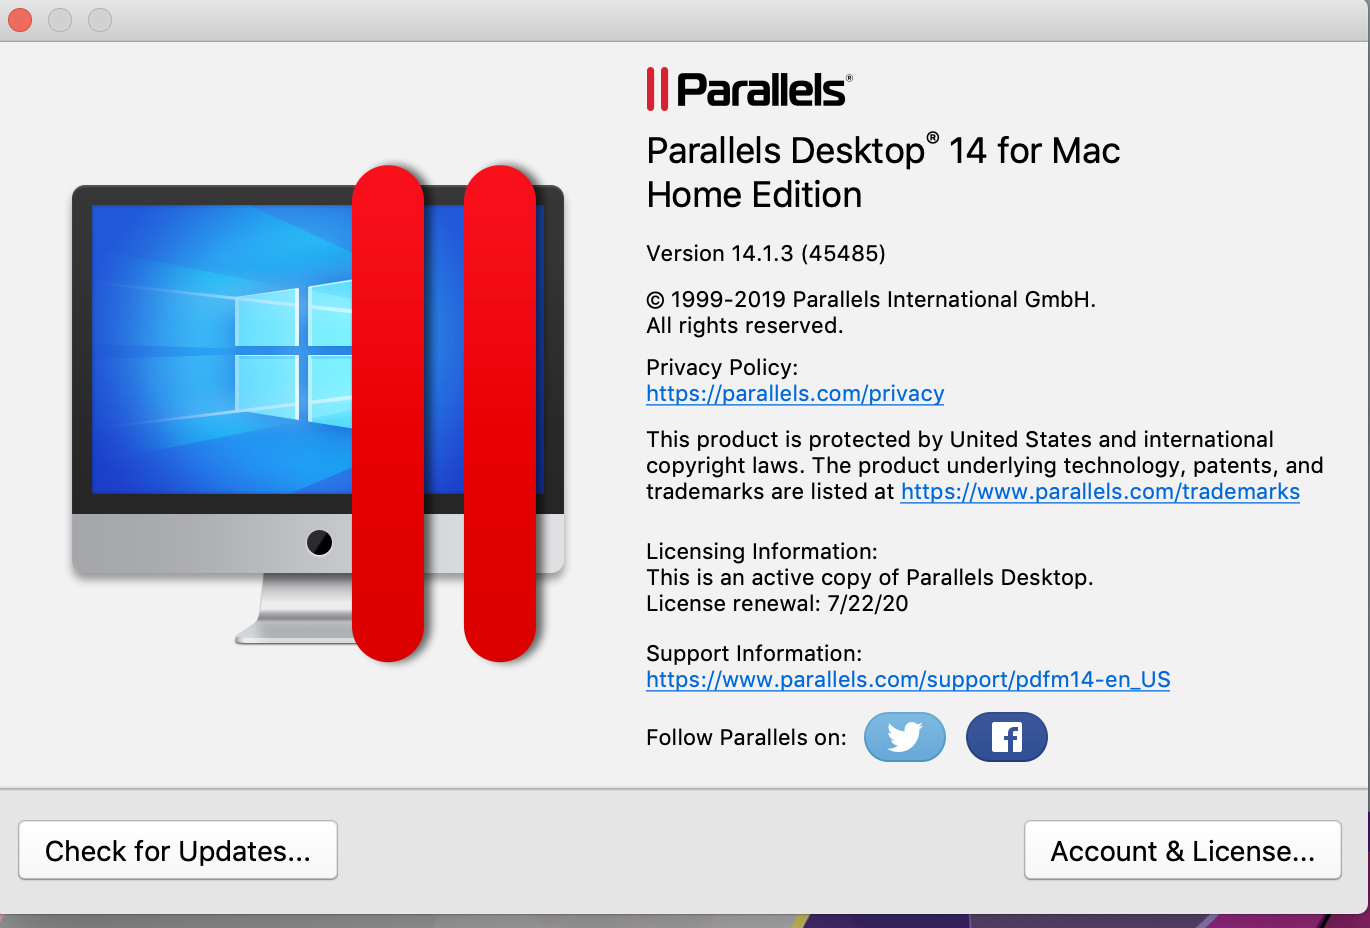 Can't install Revit 2019 on Mac with parallels - Autodesk